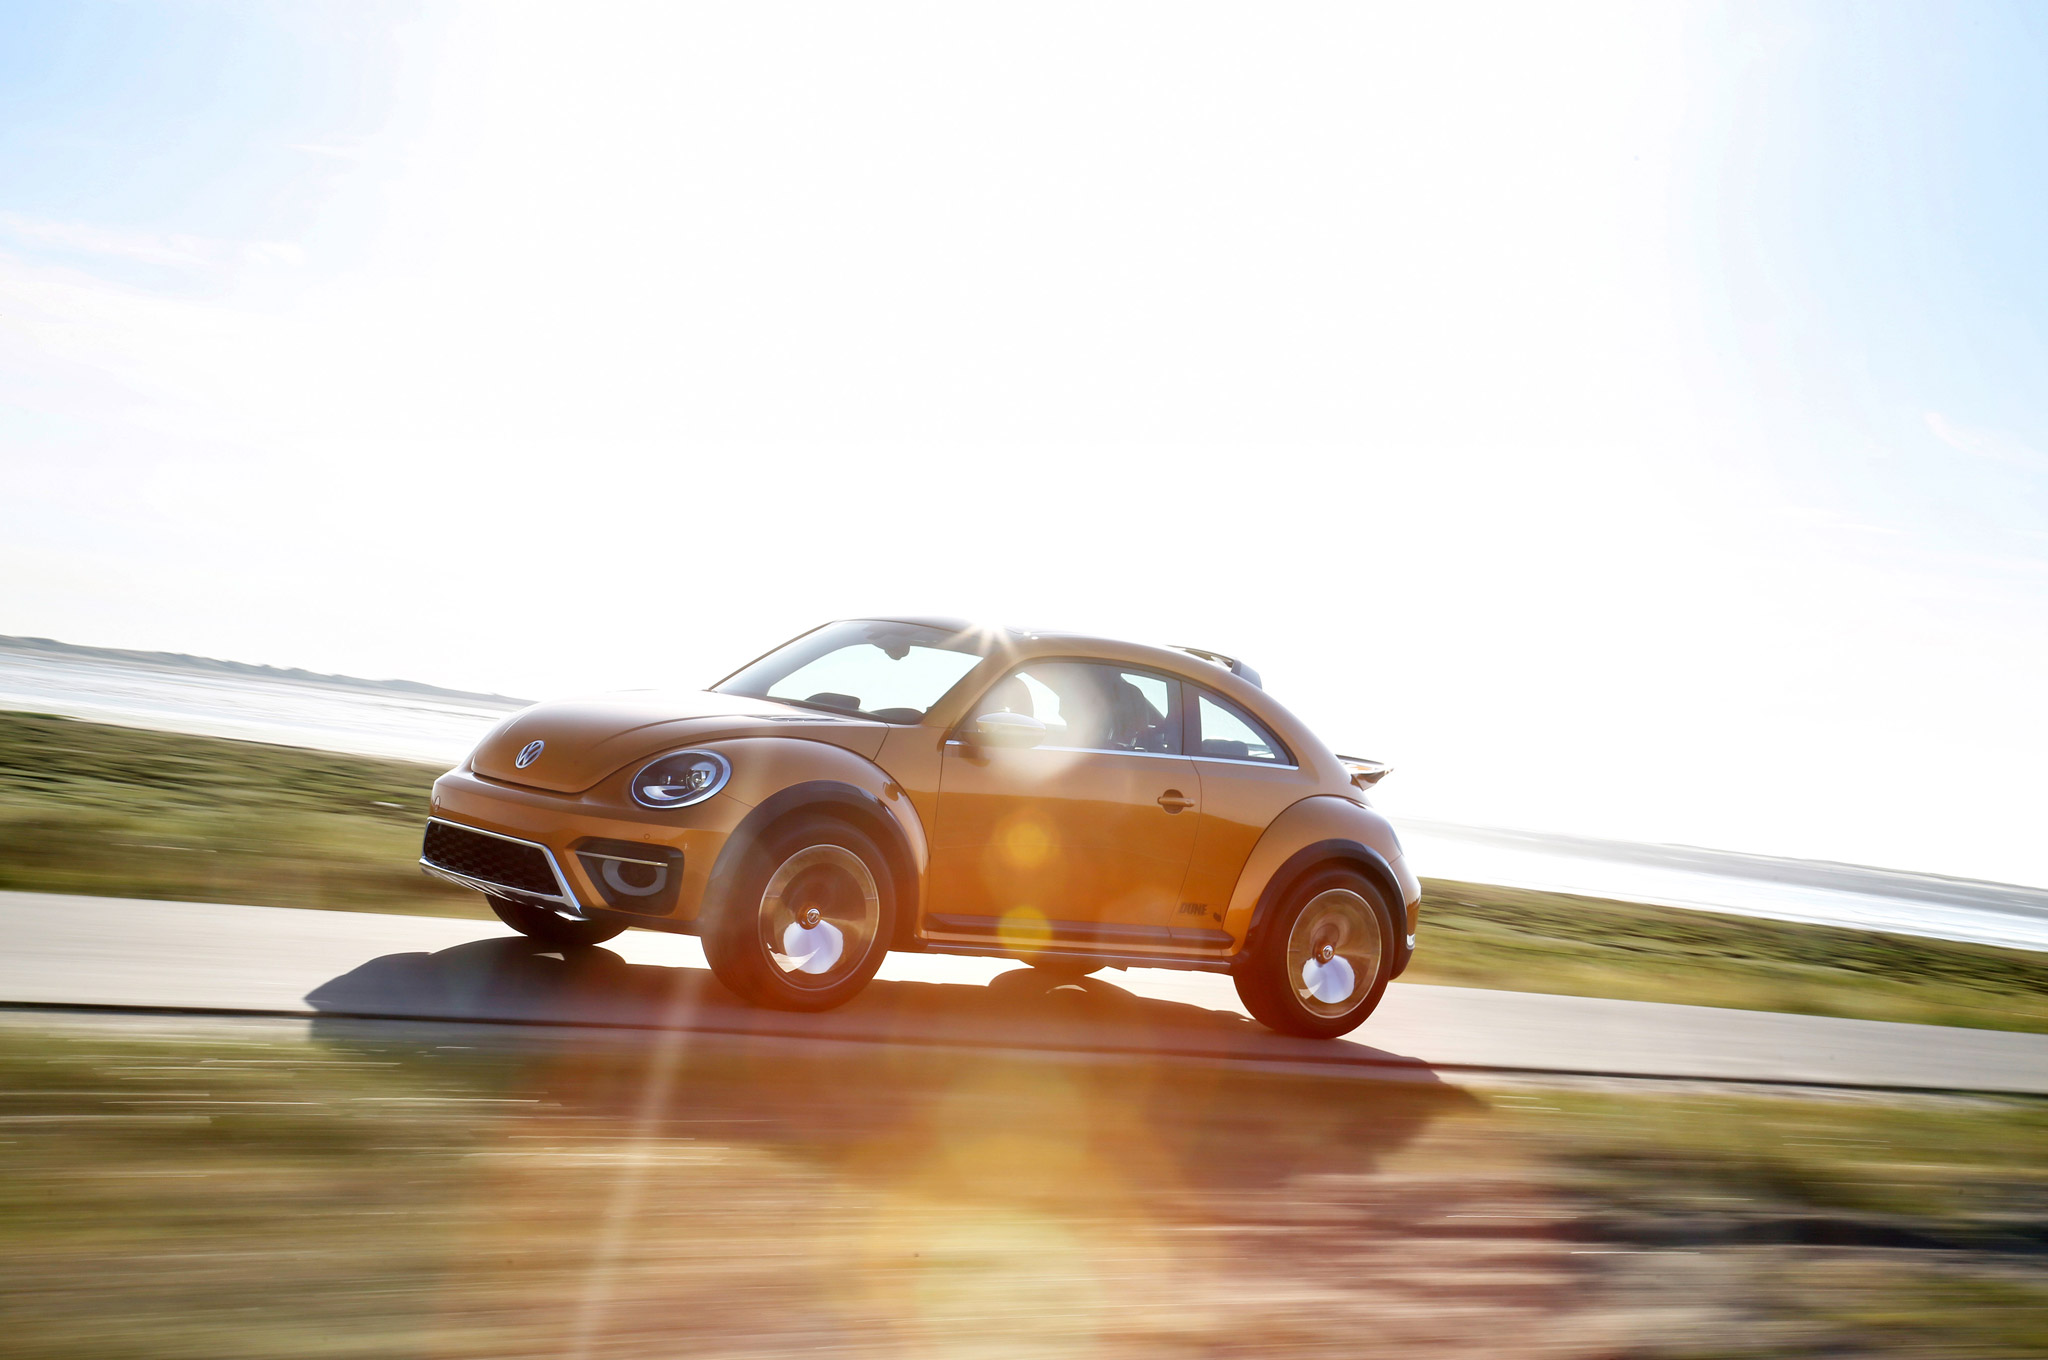 Volkswagen Beetle Dune Production Confirmed for Europe by 2016